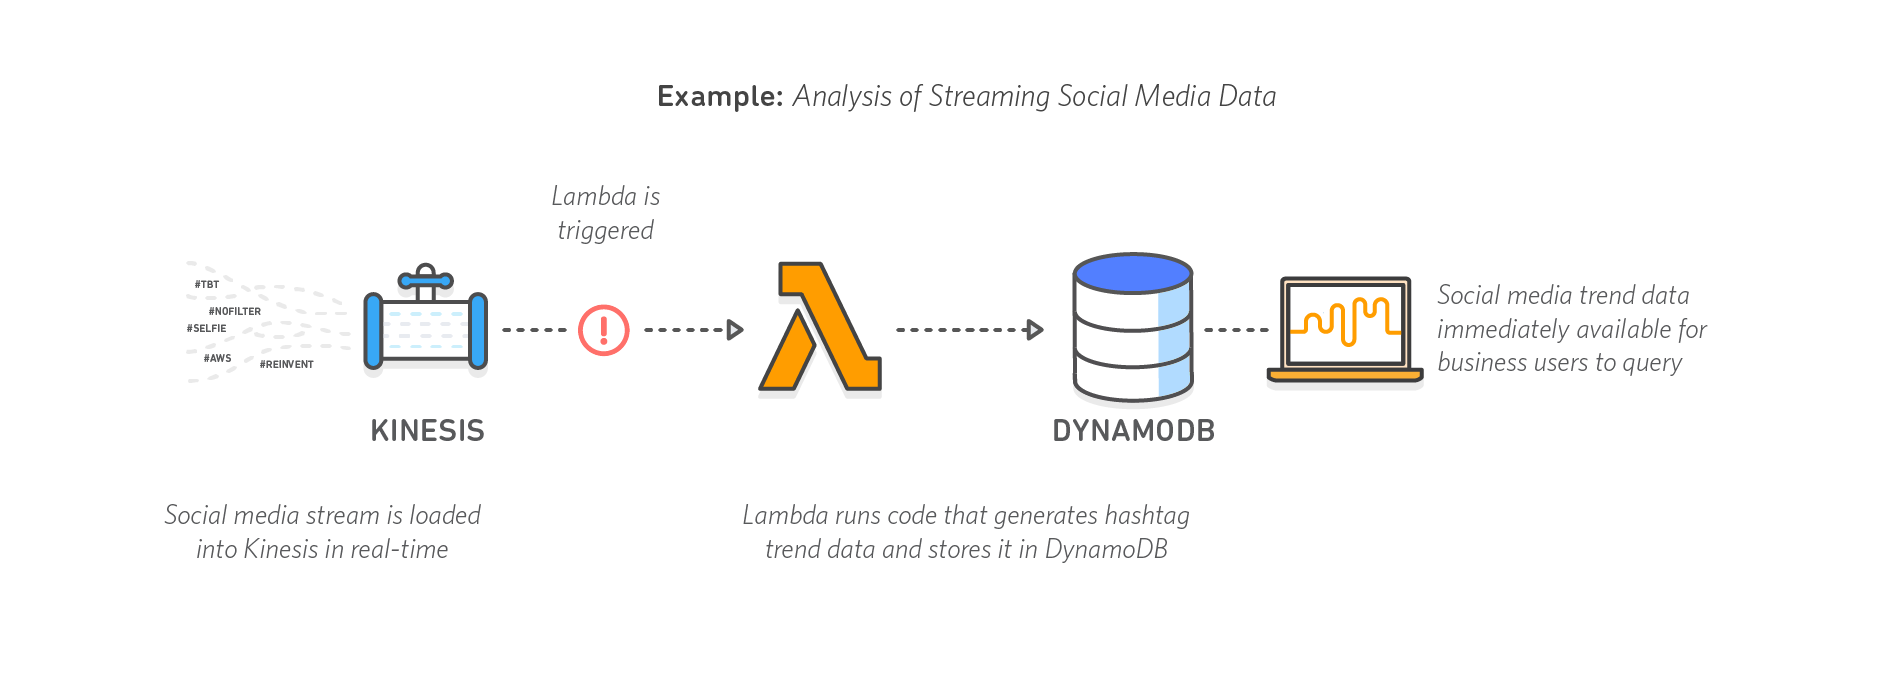 diagram_serverless-computing_analysis-social-media